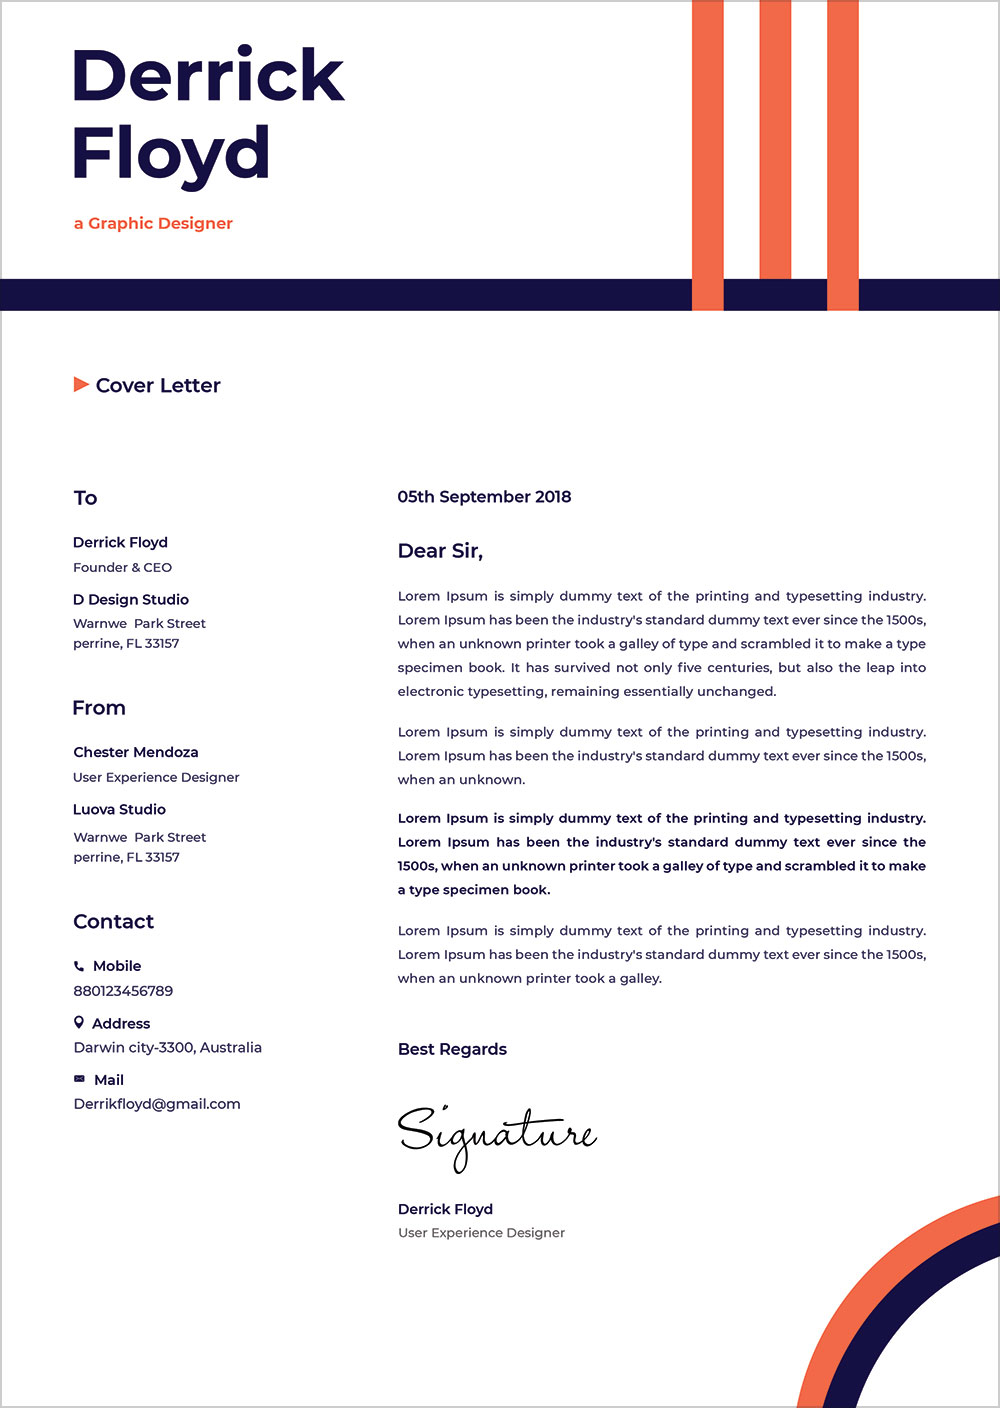 free professional cv   resume template  u0026 cover letter in word  psd  sketch  u0026 xd